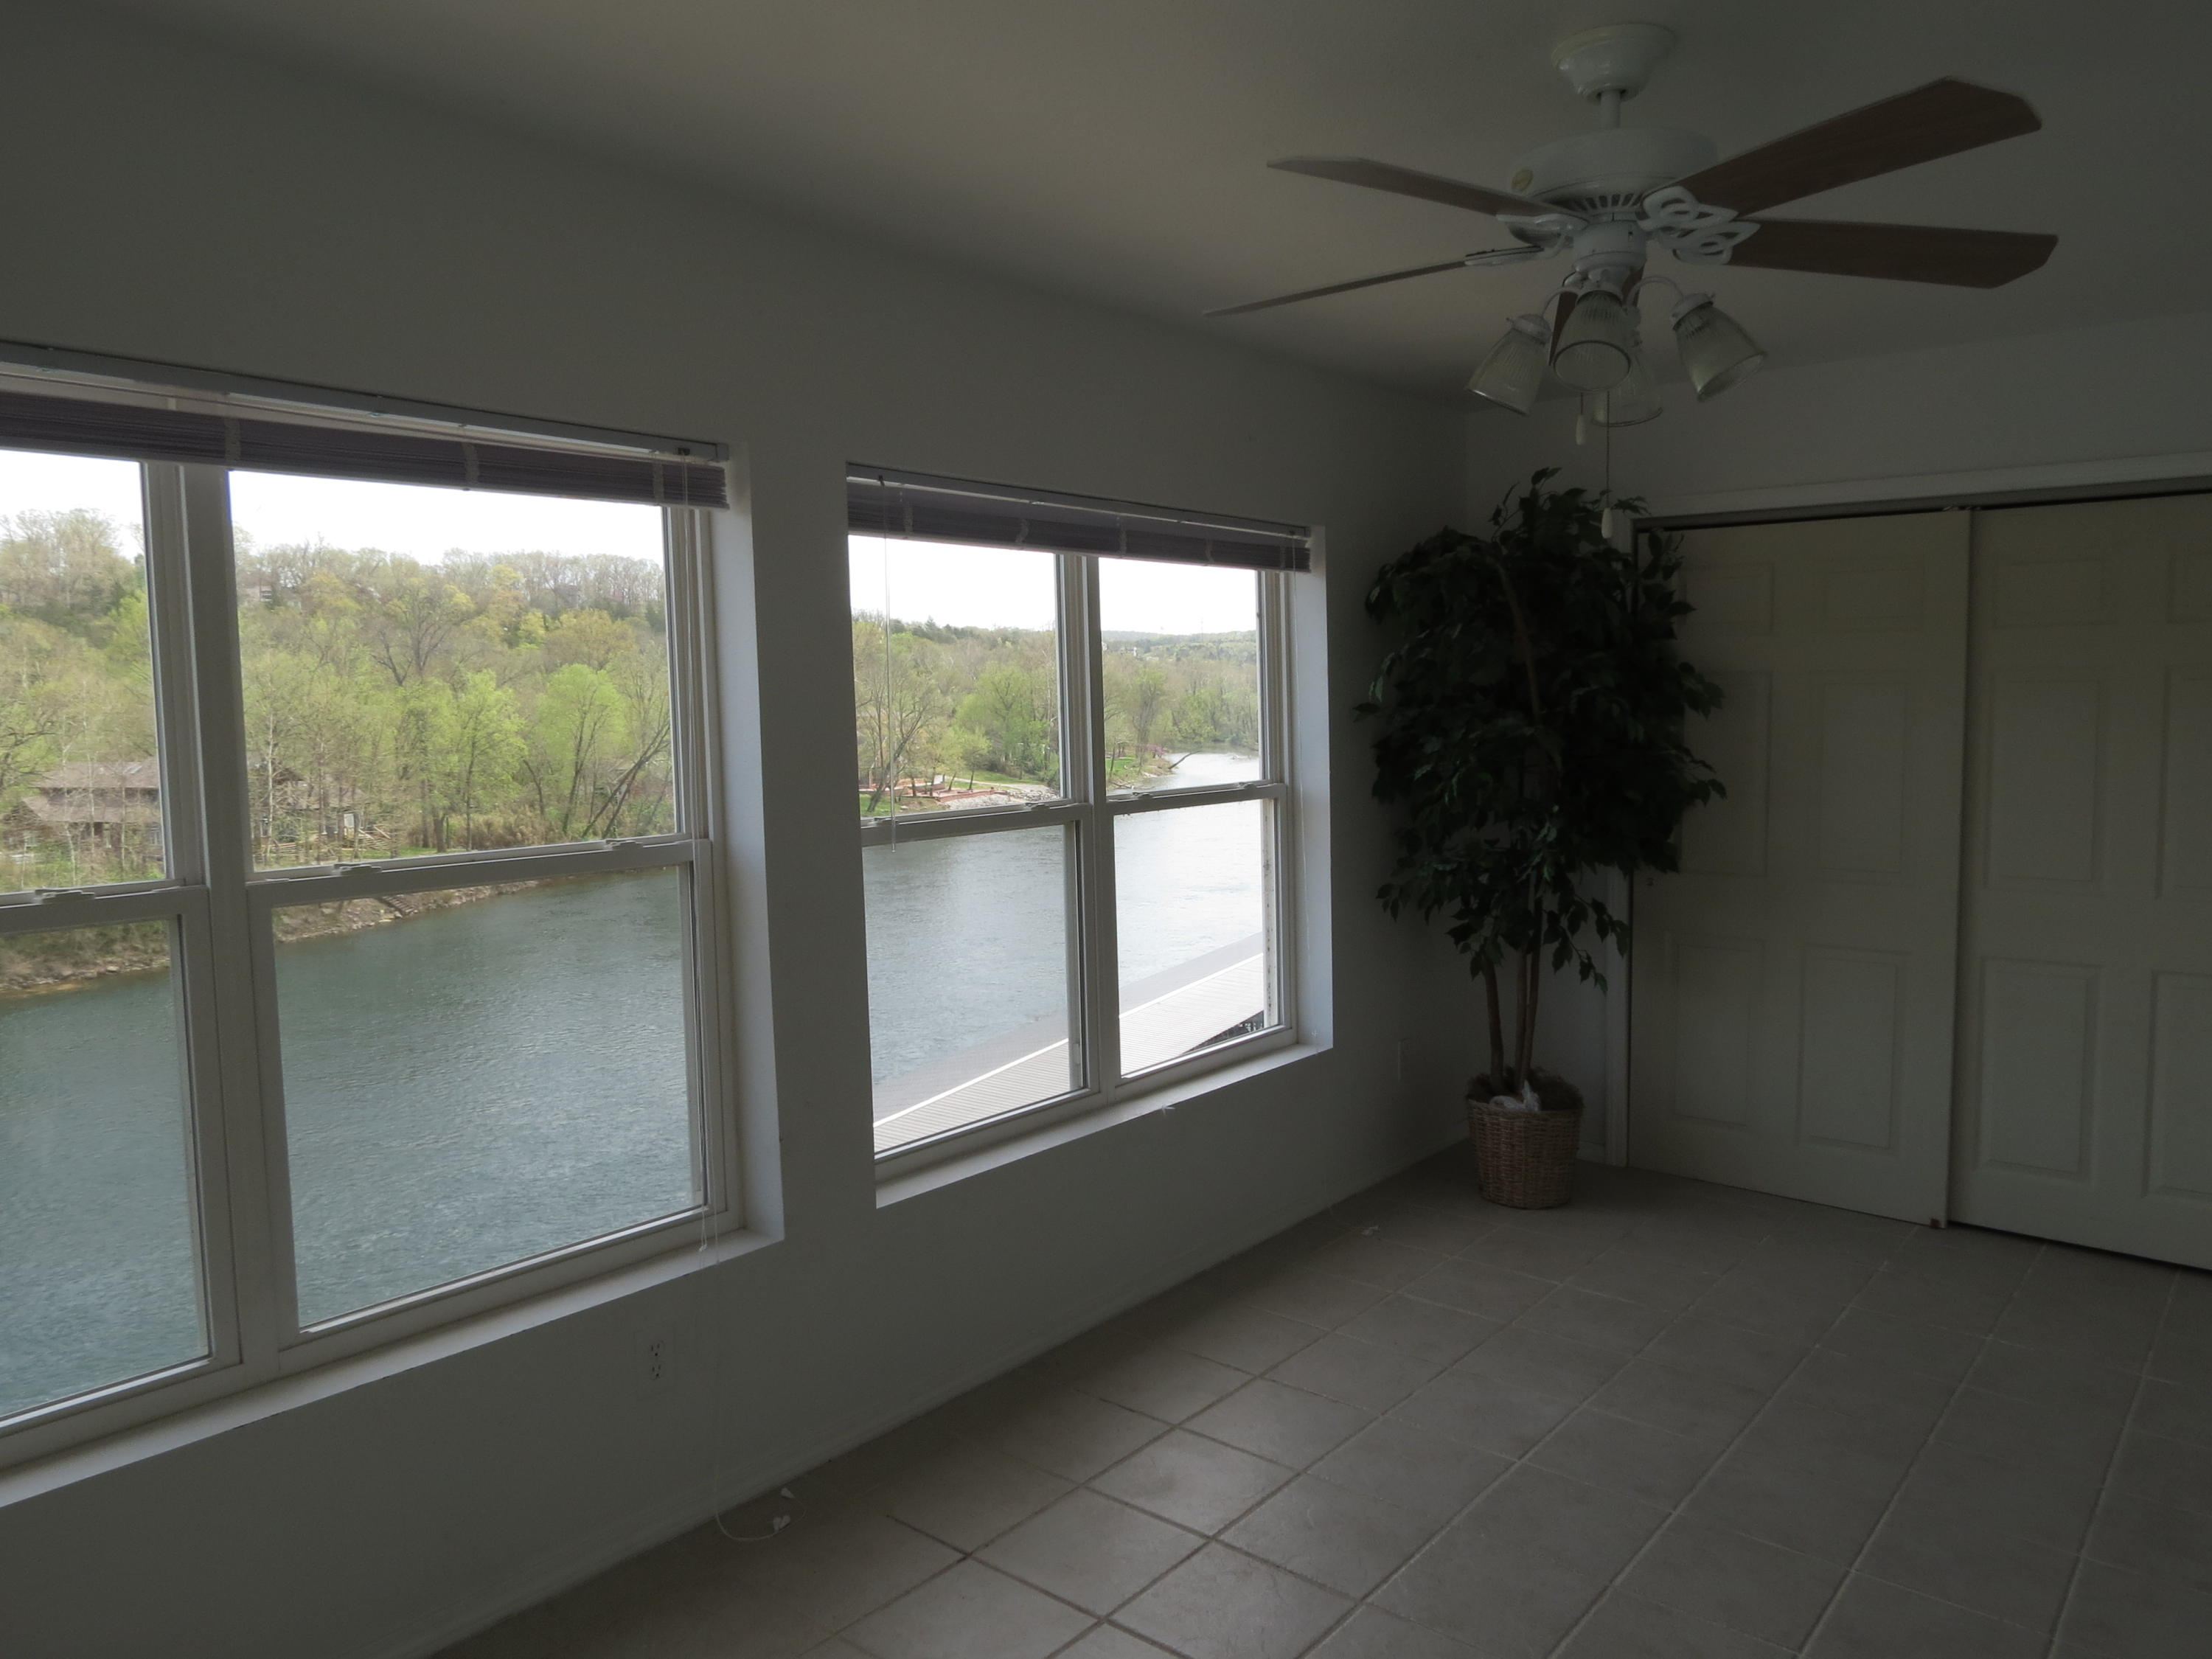 79 Anglers Pointe Drive #5 Branson, MO 65616